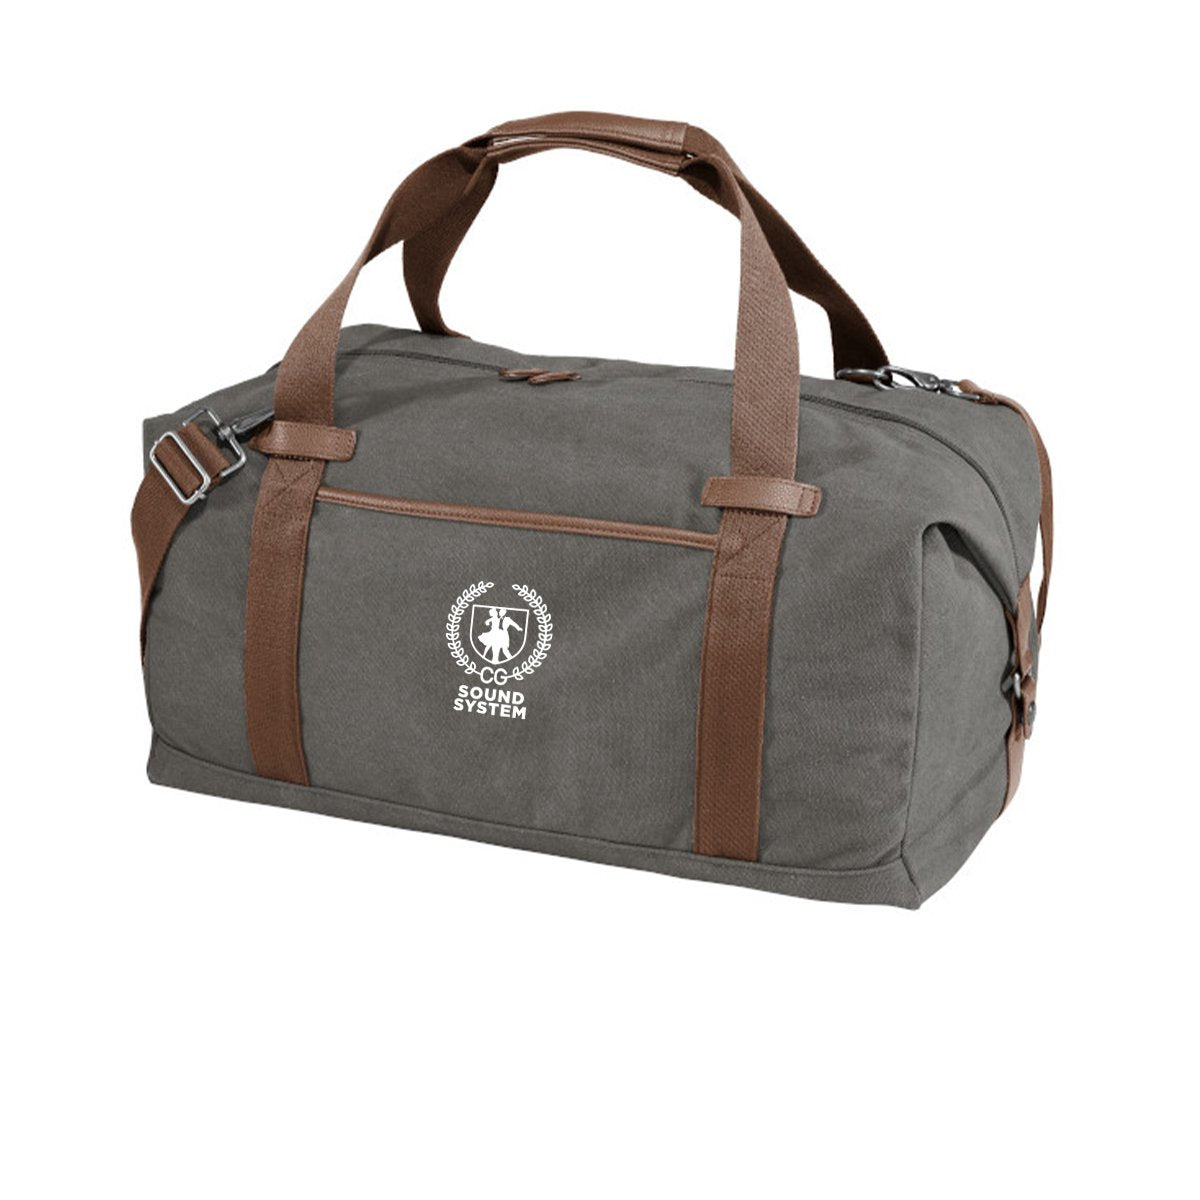 Sound System Canvas Duffel